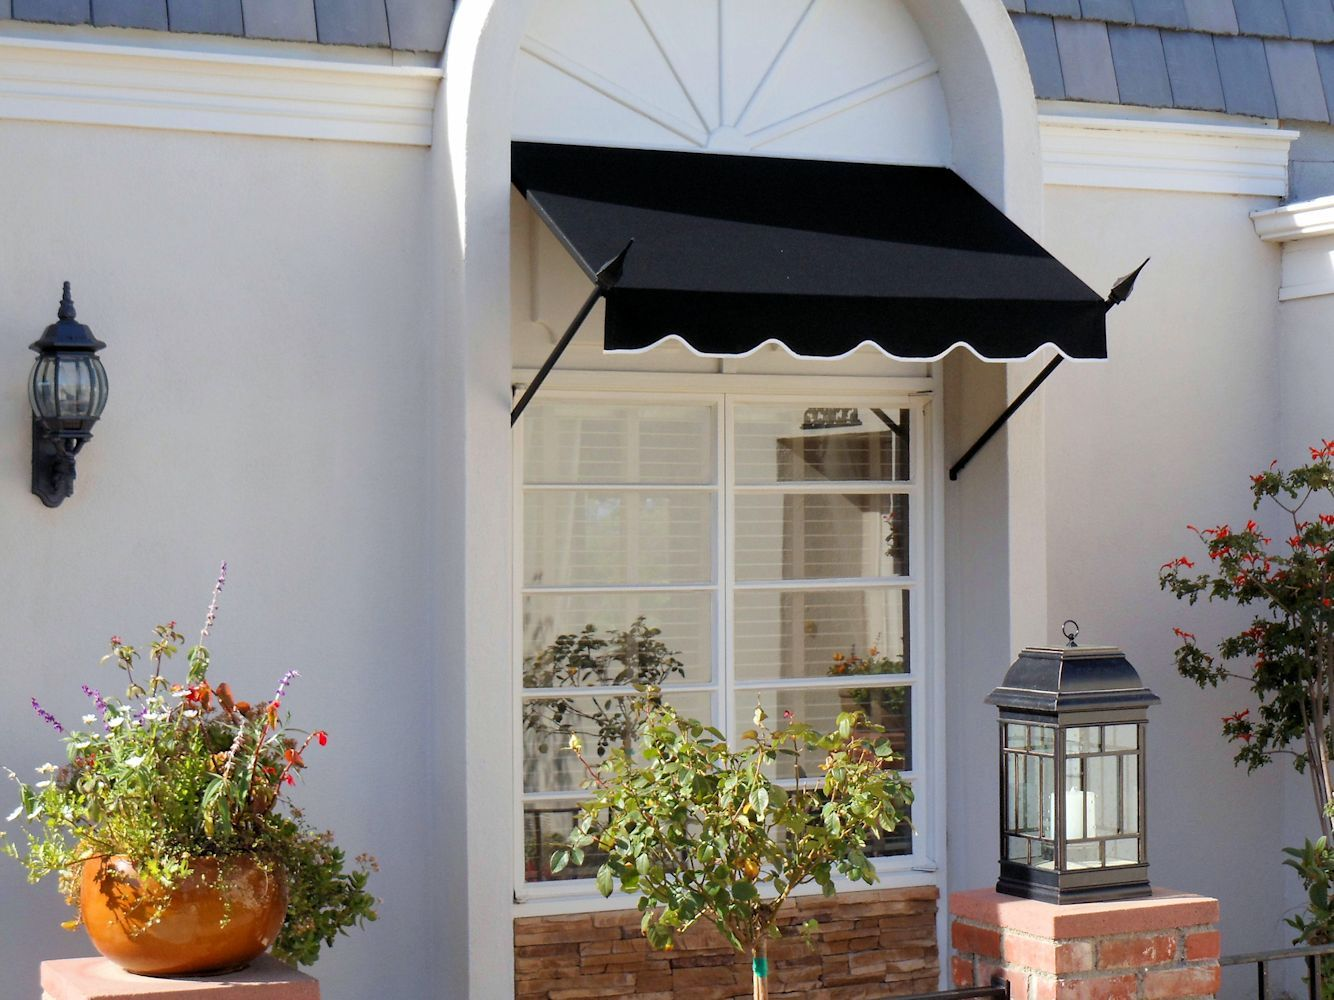 Lowes Awnings Window Awnings | Superior Awning | Iron Work | Window